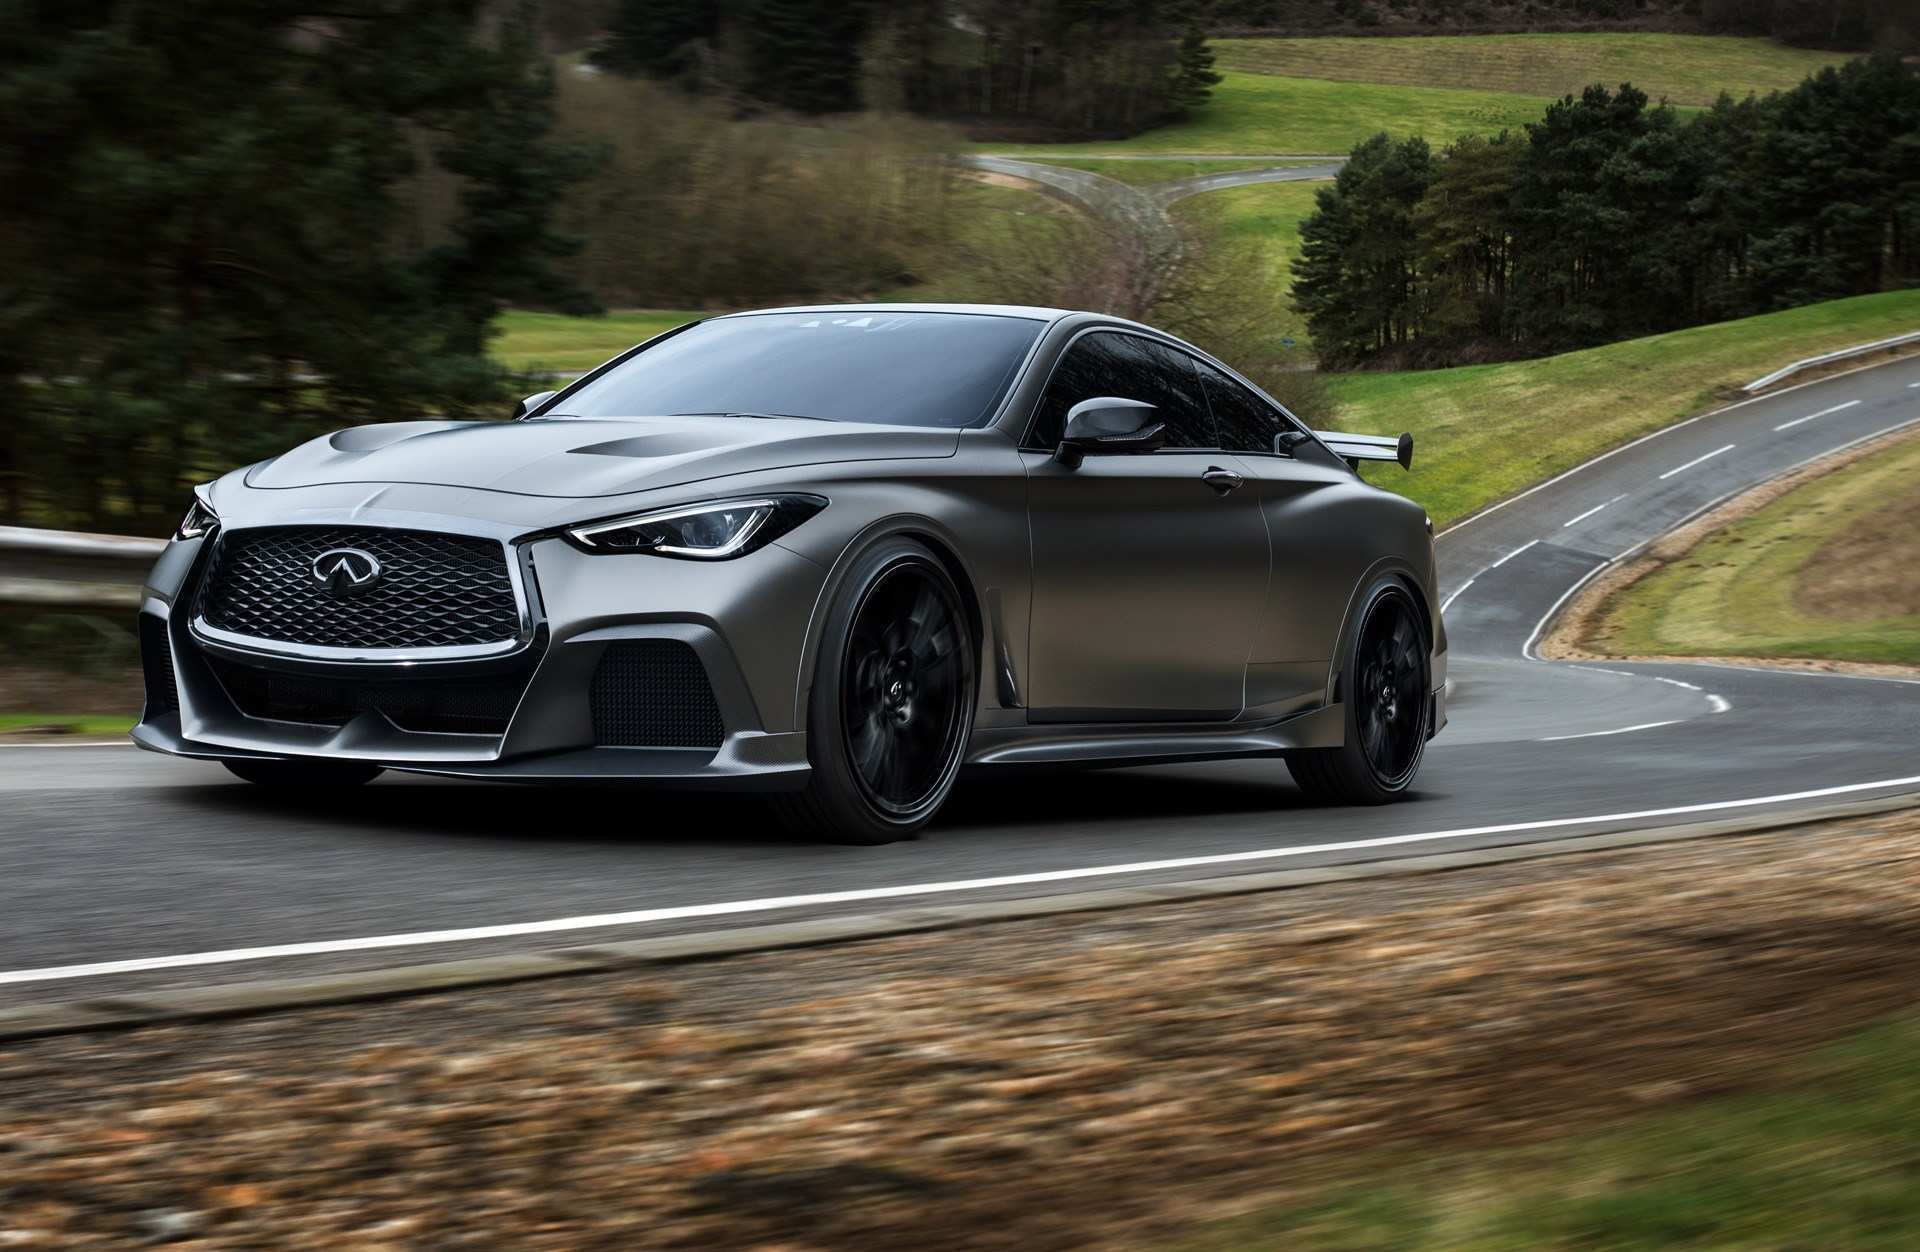 87 All New 2020 Infiniti Performance and New Engine for 2020 Infiniti